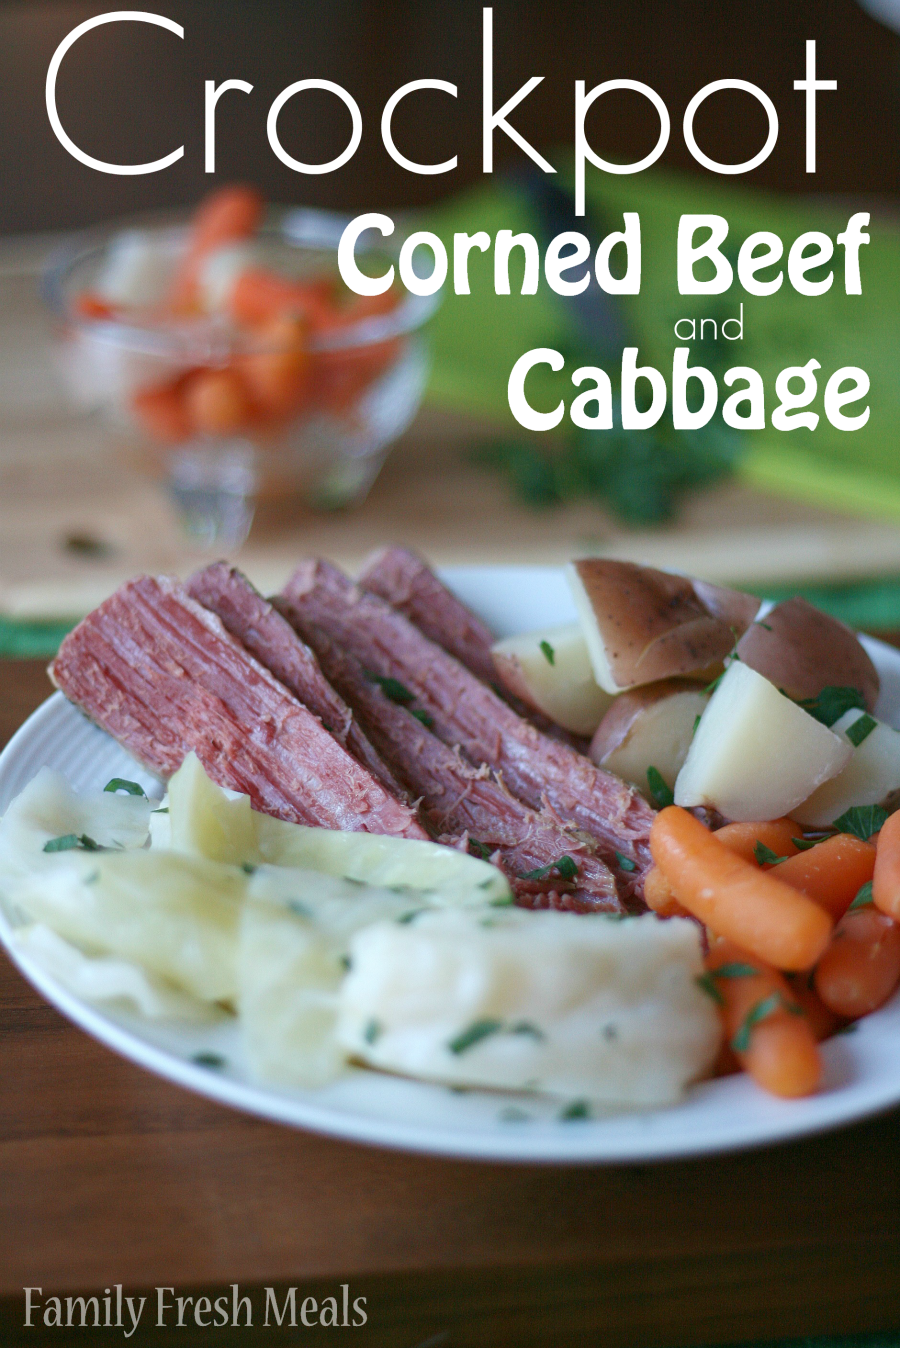 Crockpot Corned Beef and Cabbage- FamilyFreshMeals.com